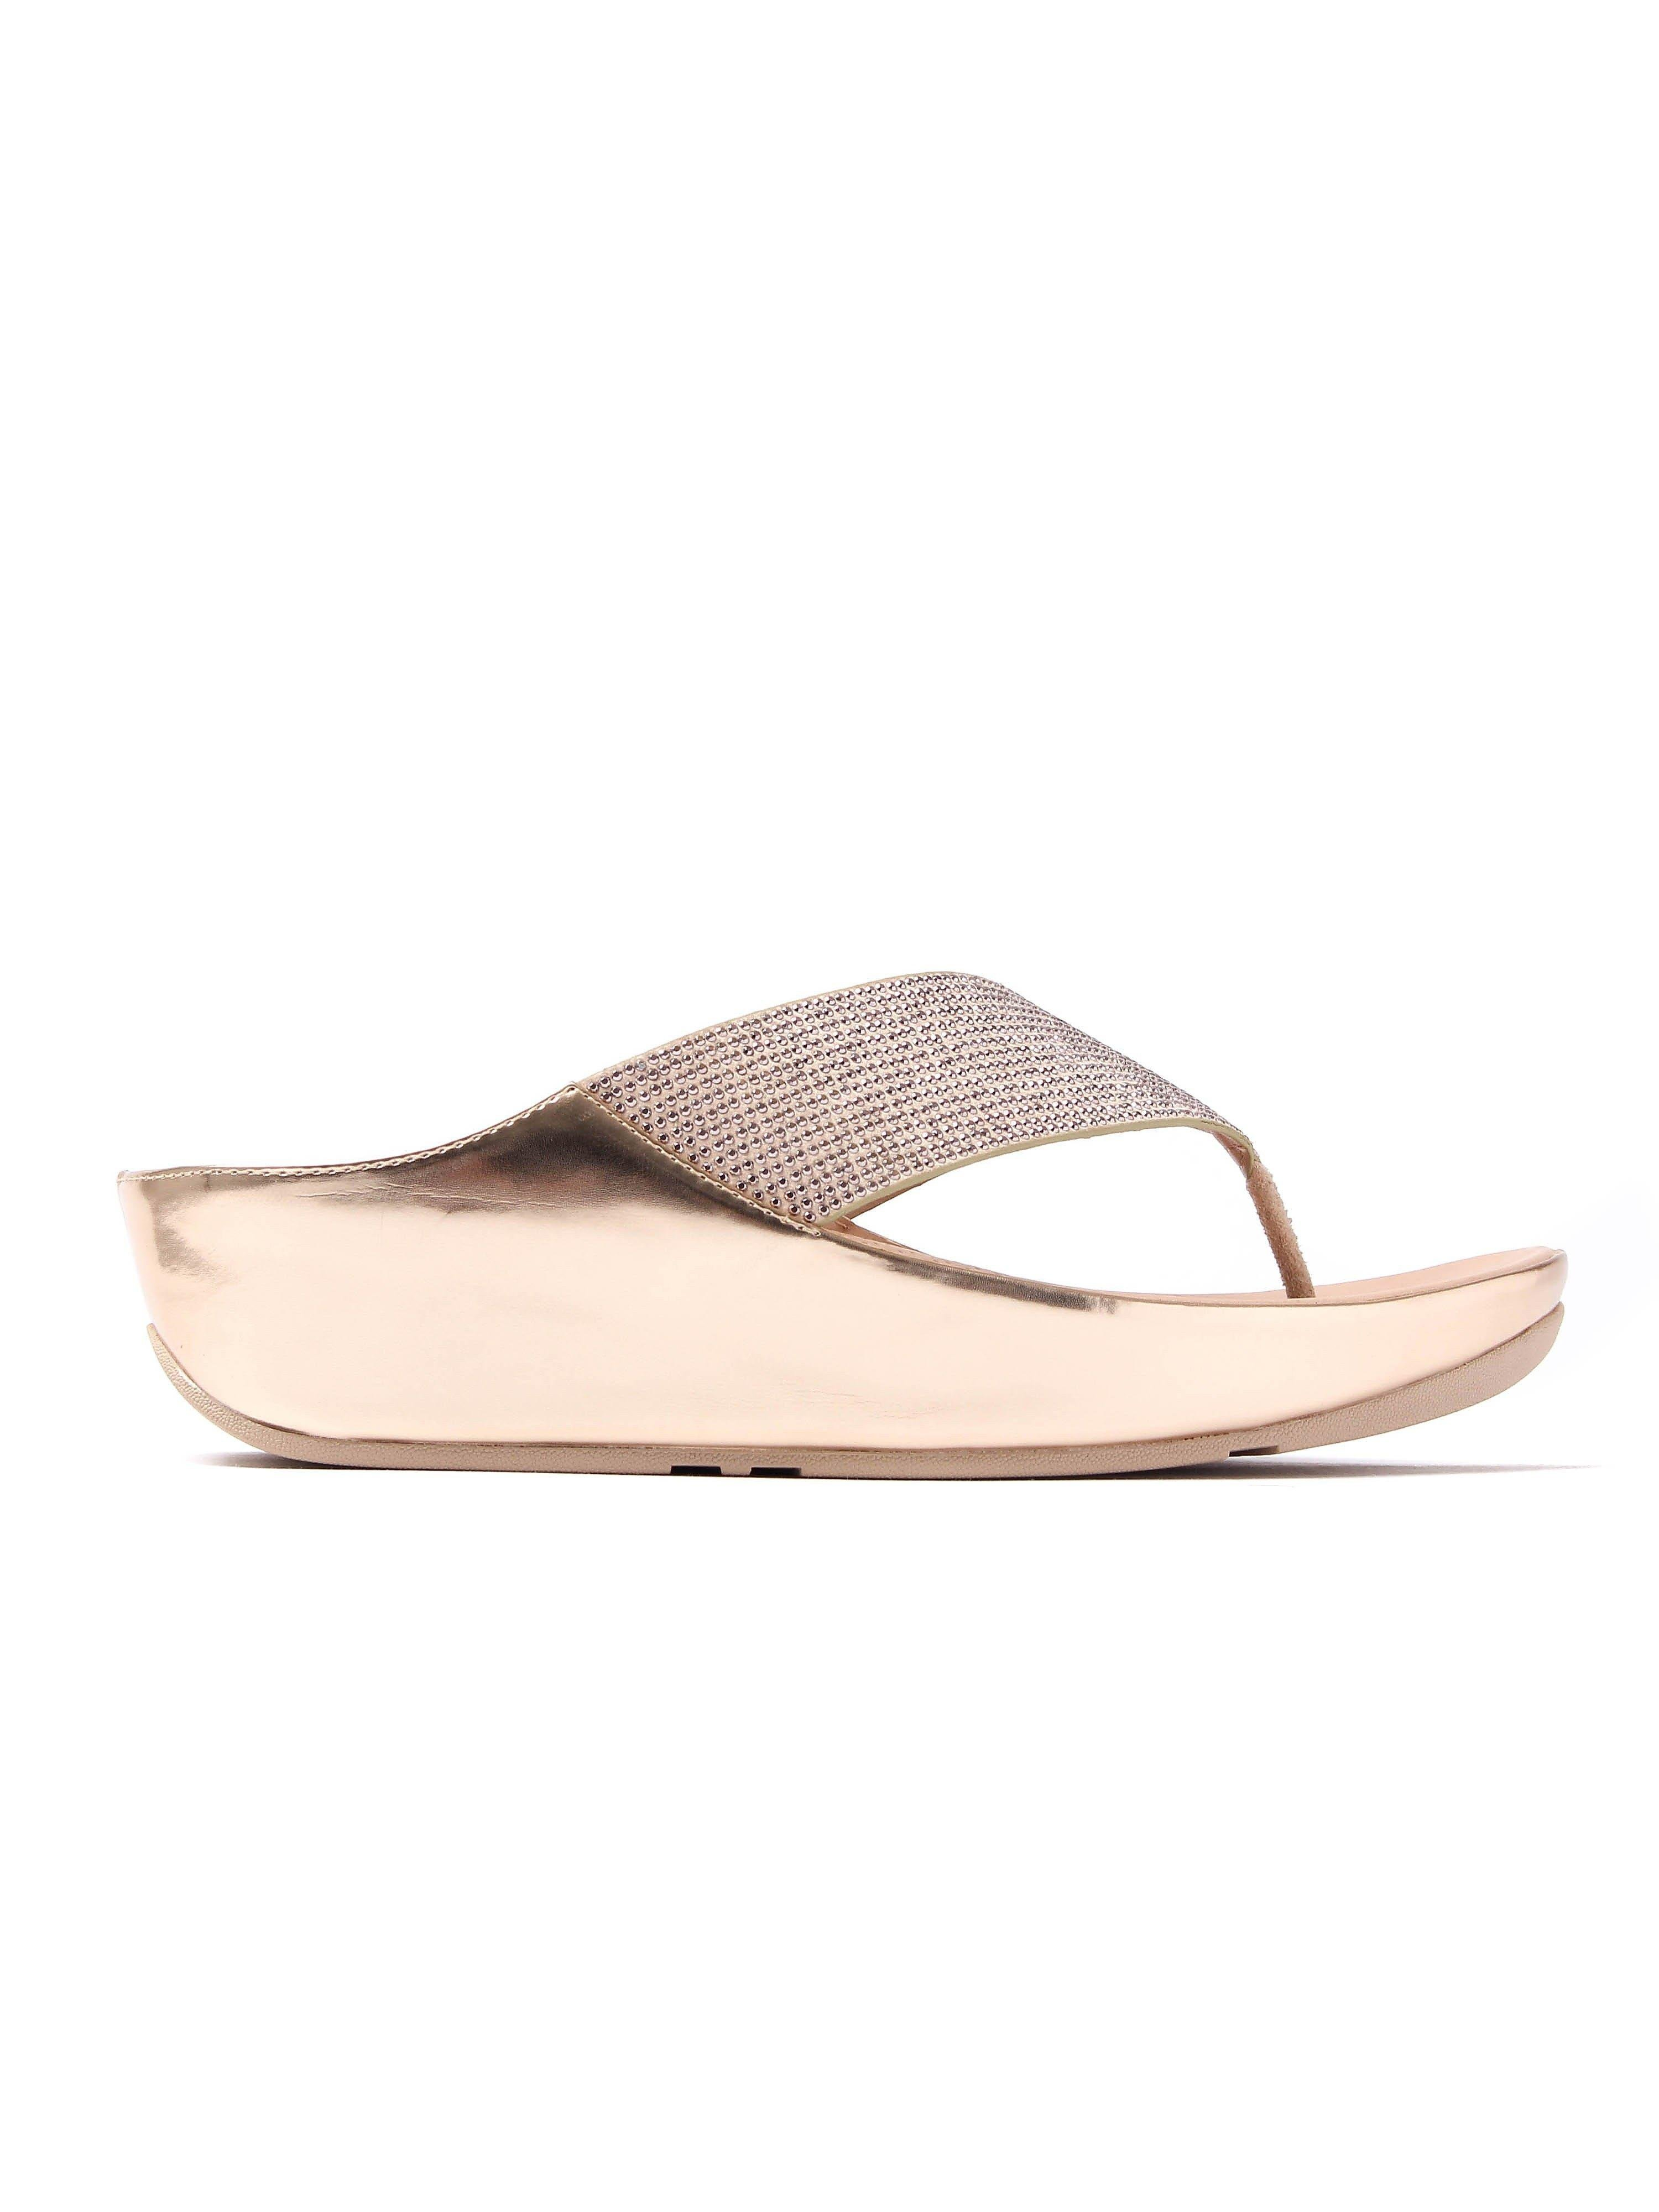 FitFlop Women's Crystall Toe-Post Slip On Sandals - Rose Gold